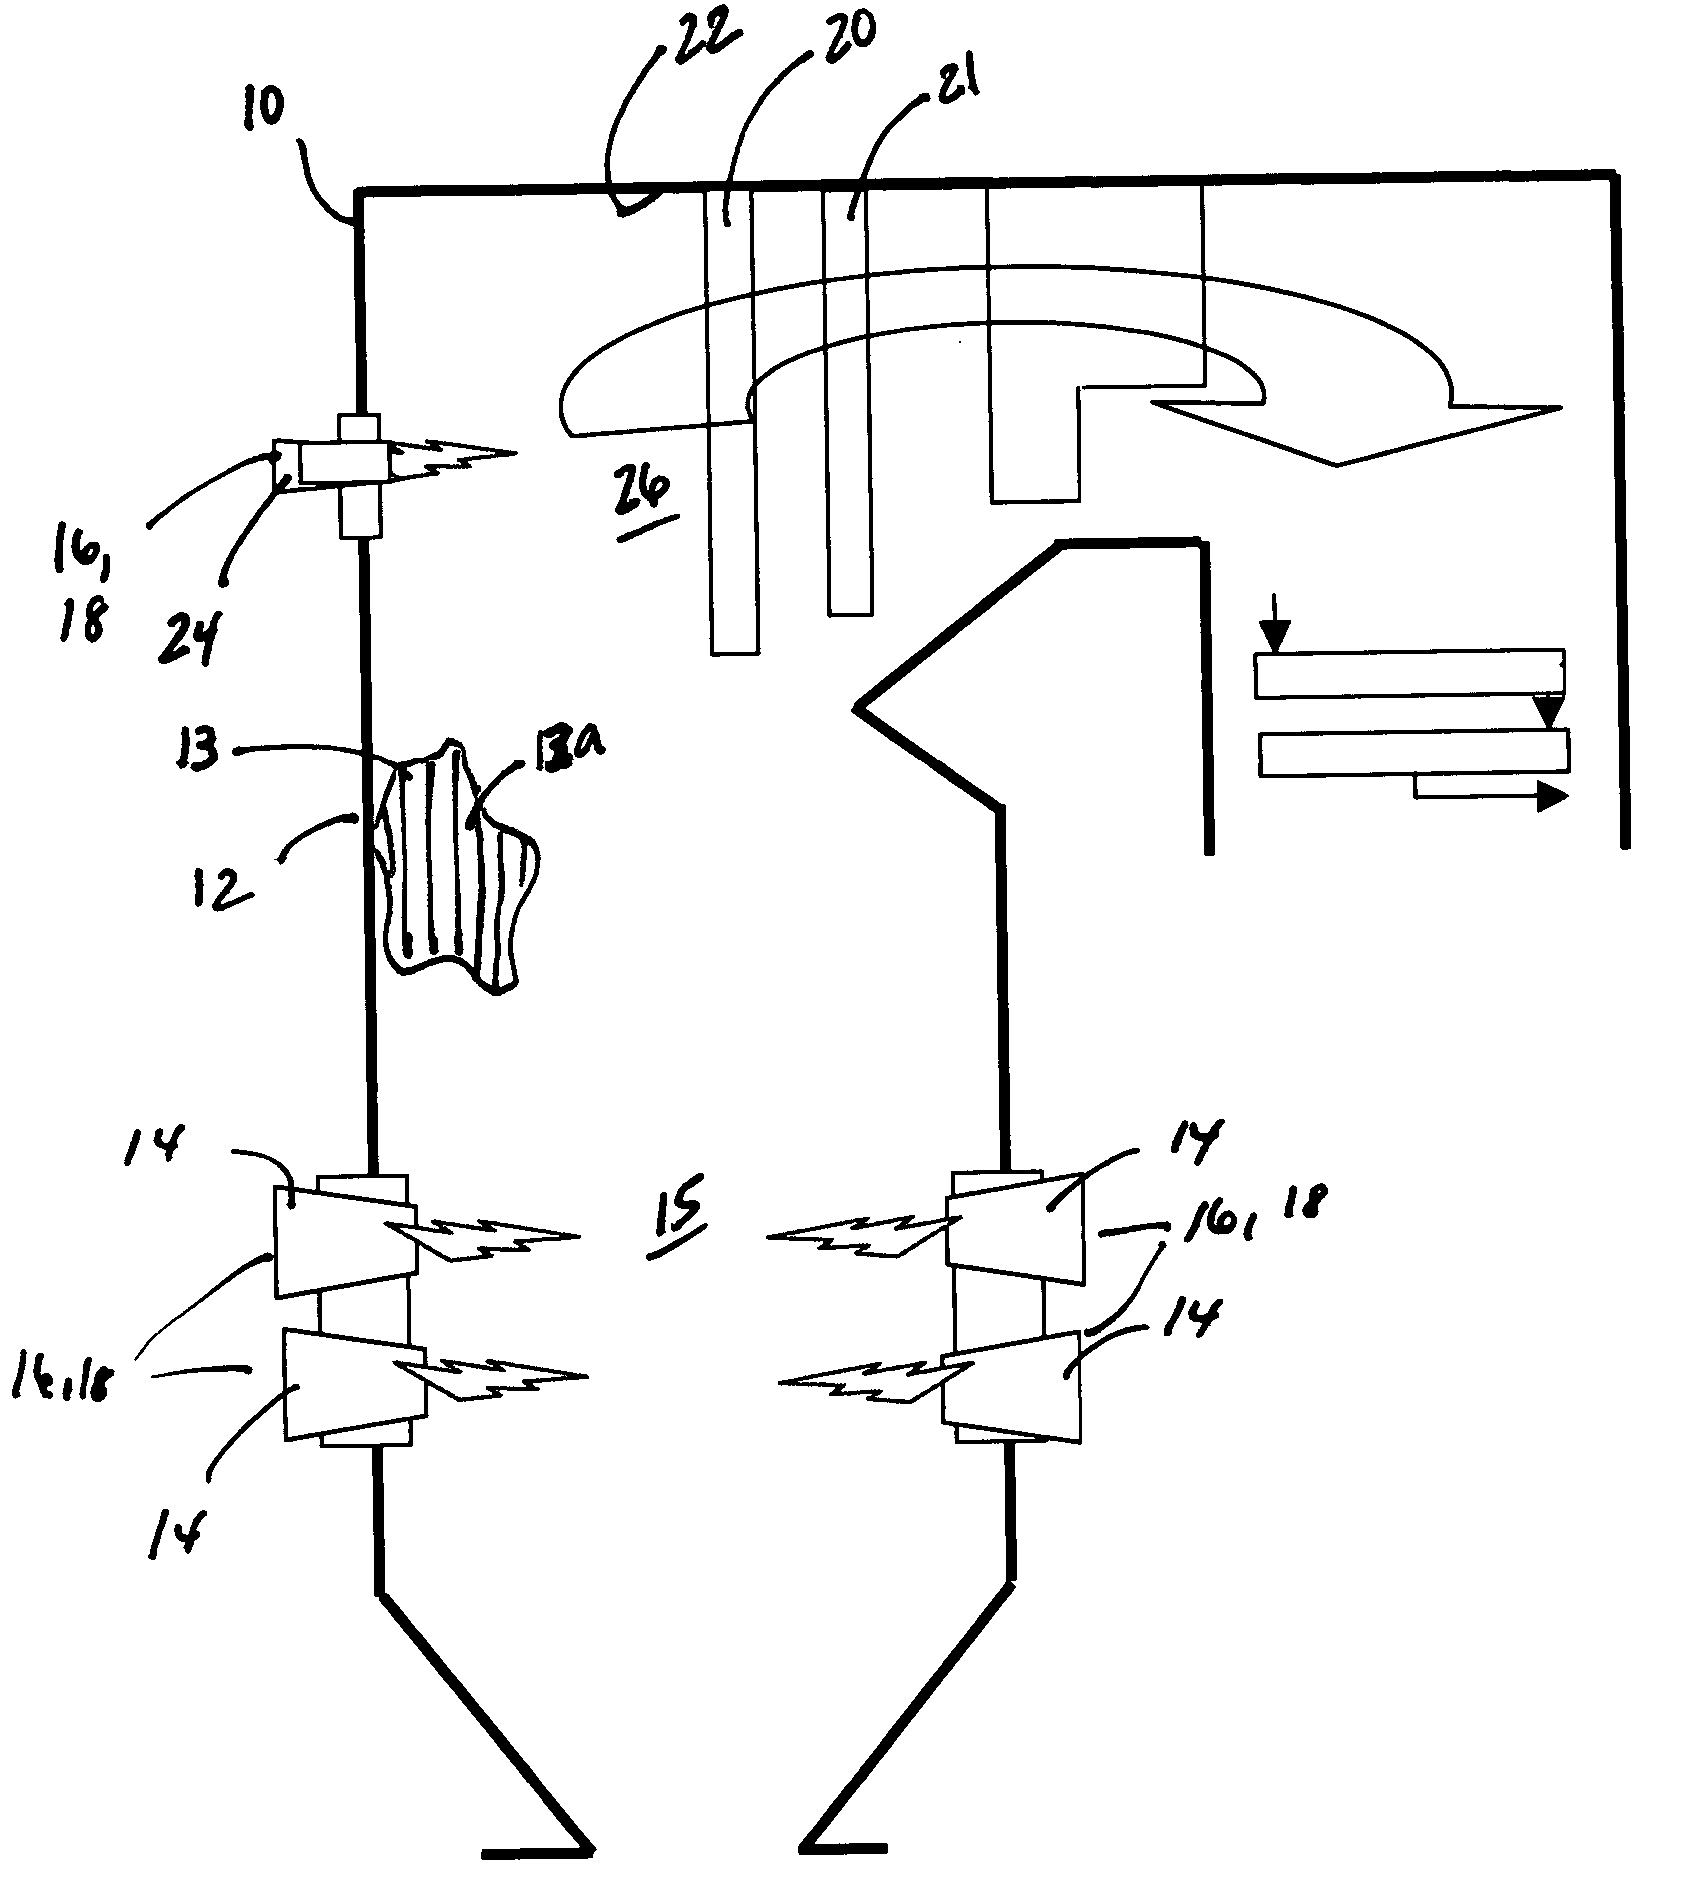 patent us20050072379 device and method for boiler superheat Steam Boiler Lighting patent drawing